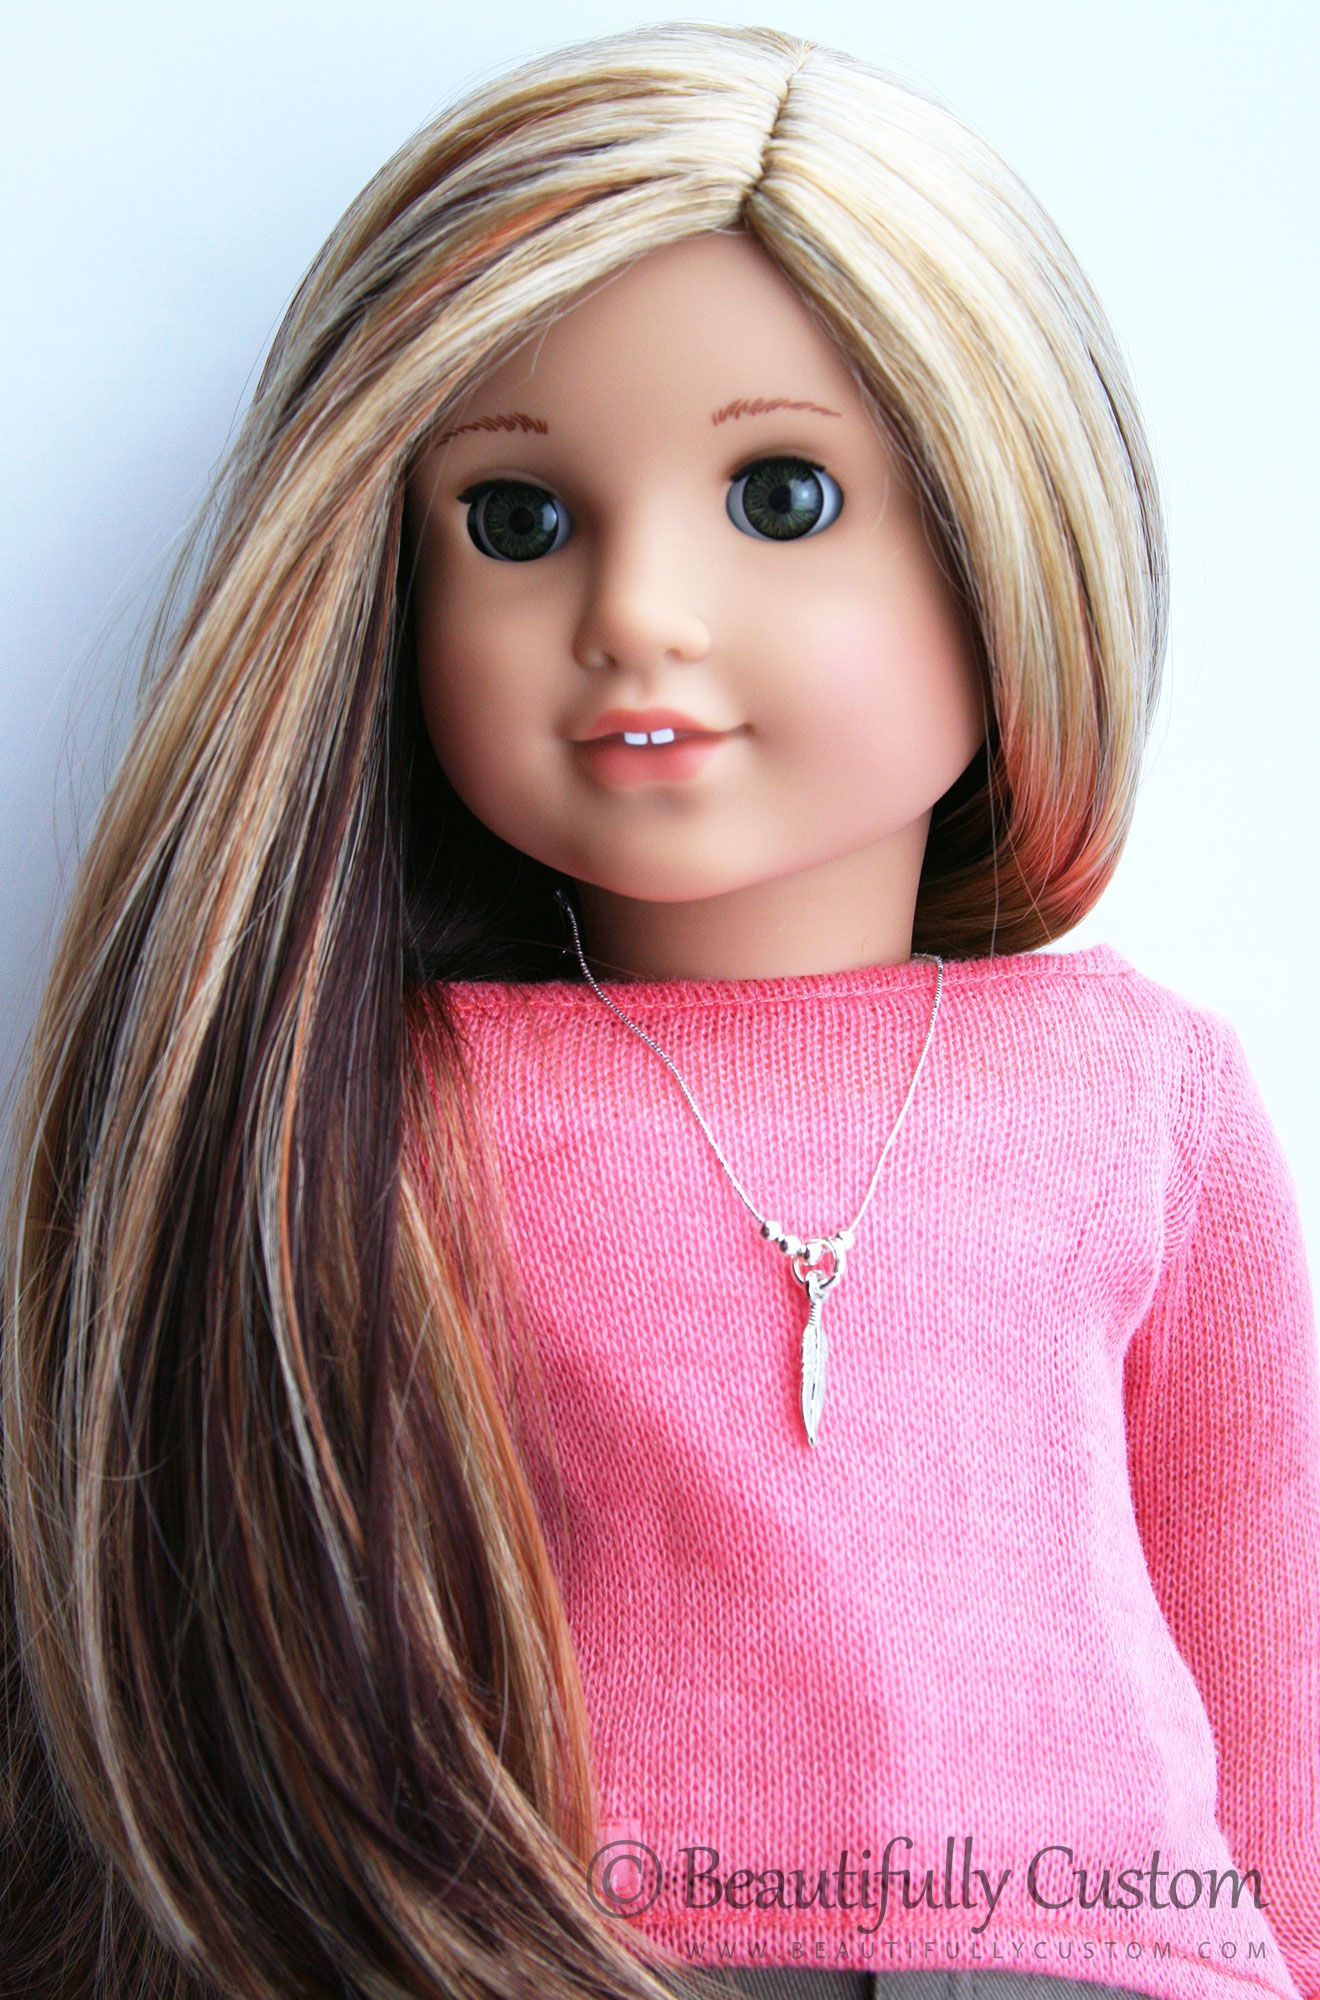 Search Results Ag doll wigs Doll wigs, 18in dolls, Dolls